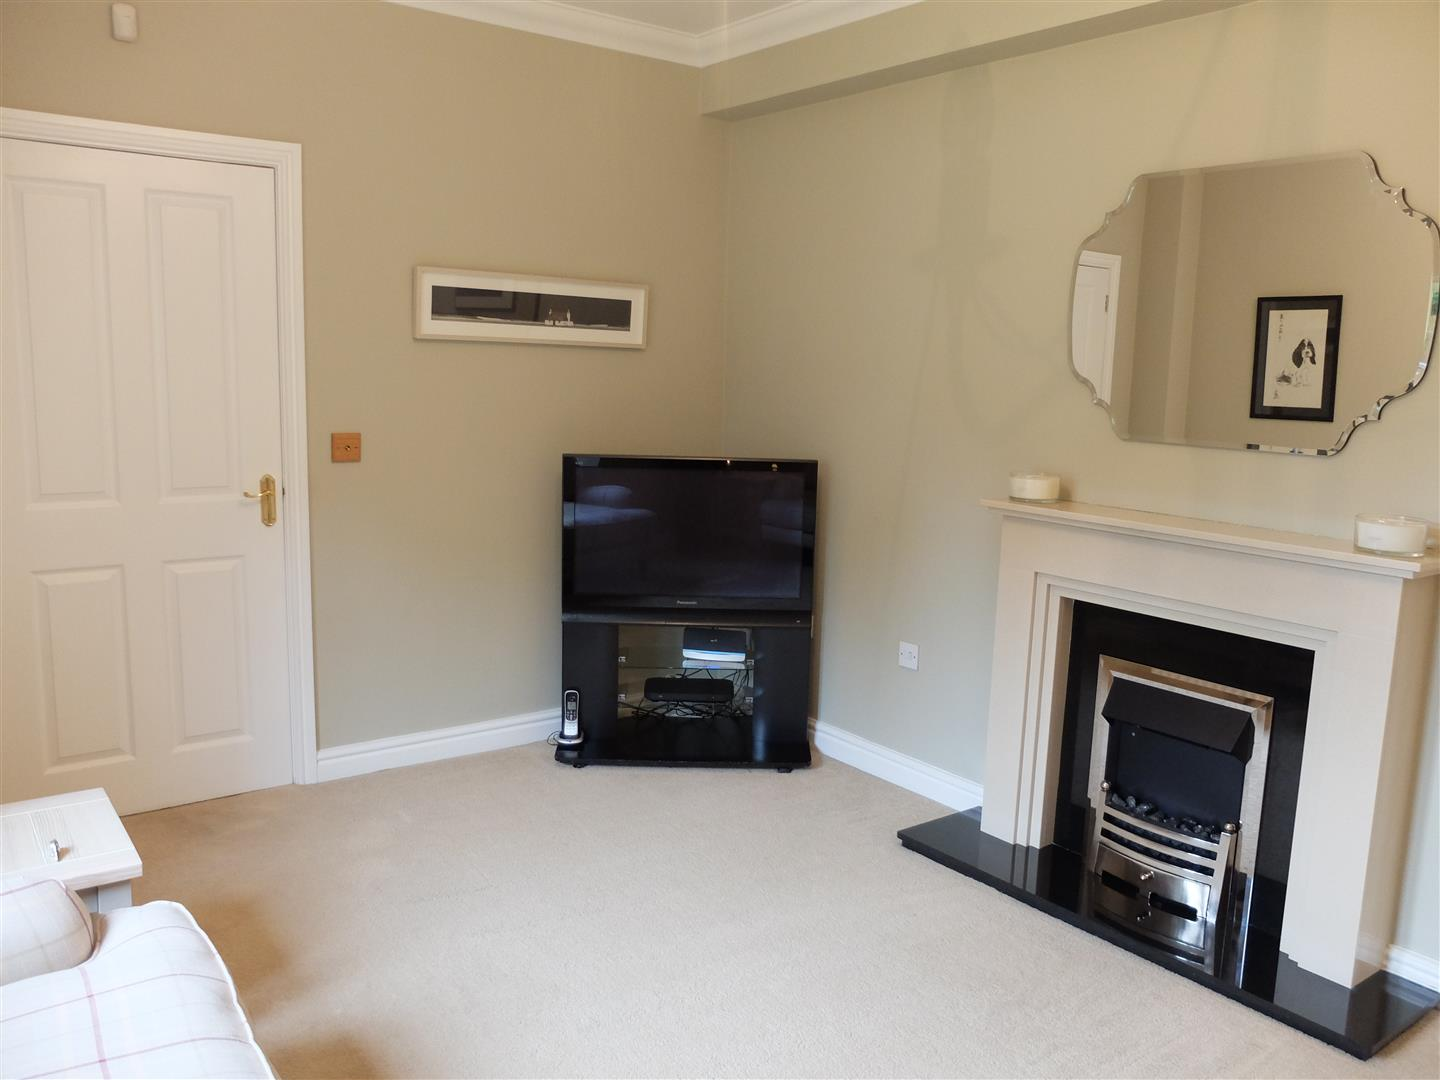 3 Bedrooms House - Mid Terrace On Sale 4 Oval Court Carlisle